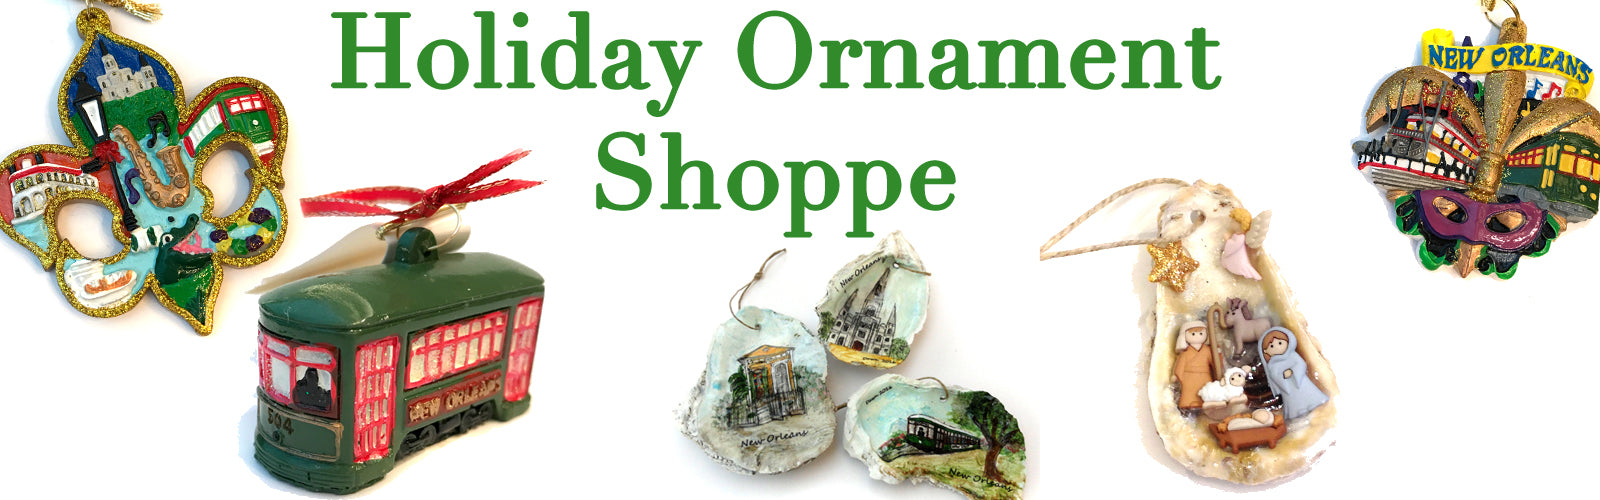 Holiday Ornament Shop